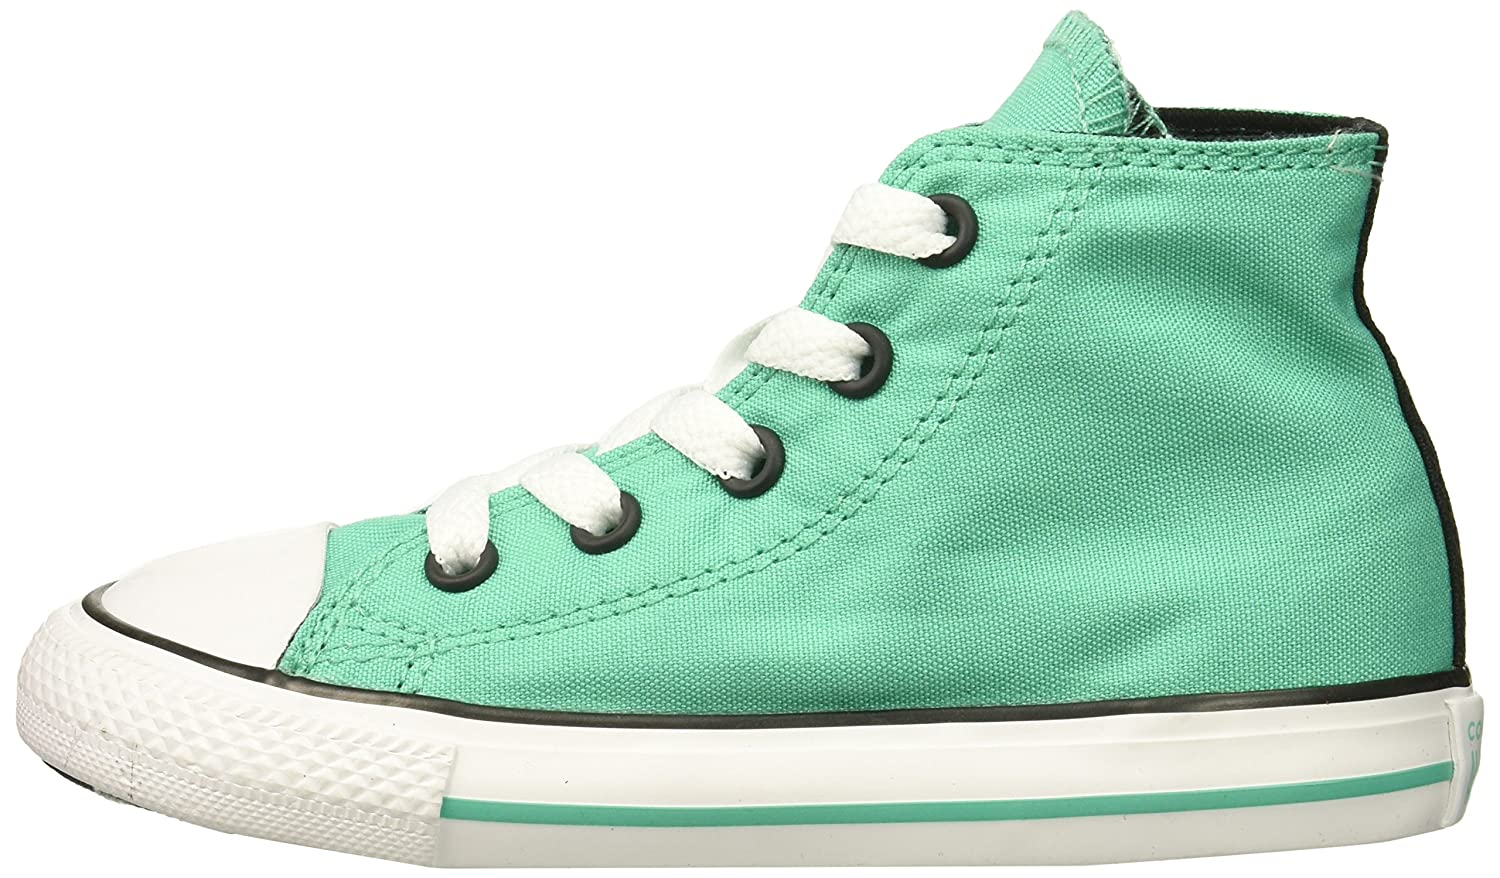 d6070d94c26 Converse Kids Chuck Taylor All Star 2018 Seasonal High Top Sneaker